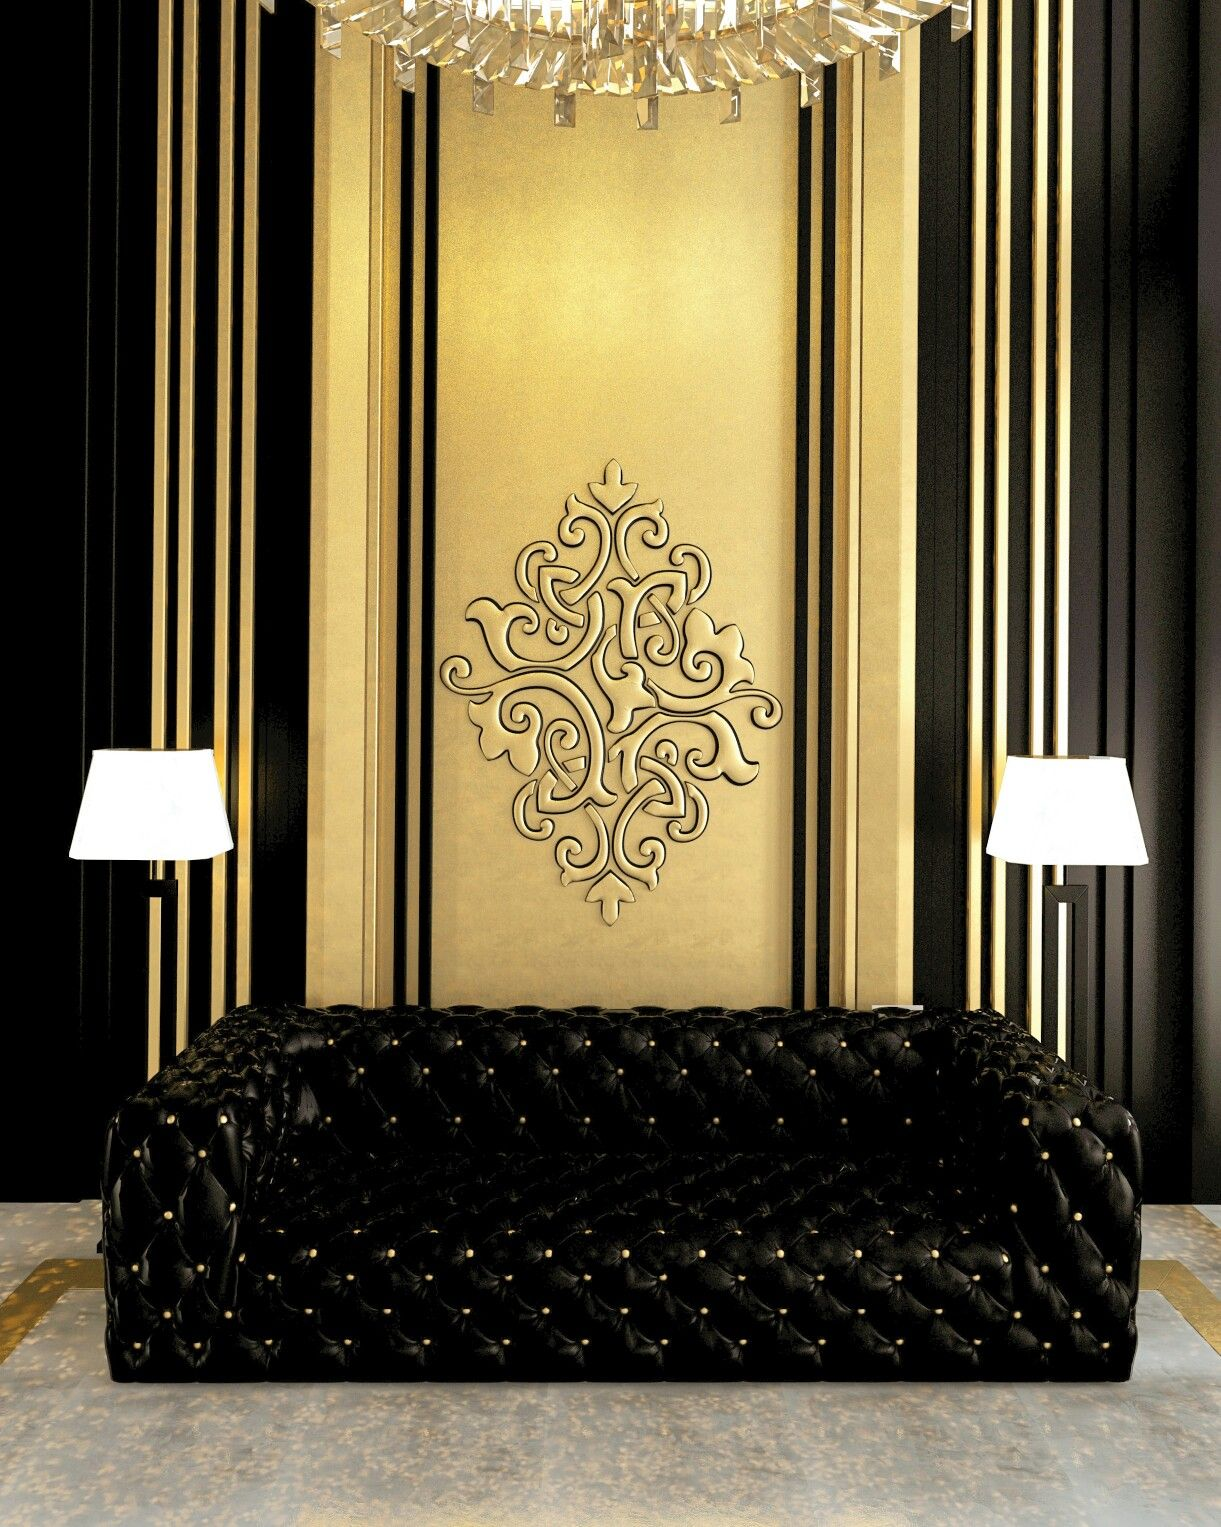 Black and gold | Ceiling n gypsum | Pinterest | Gold, Interiors and ...